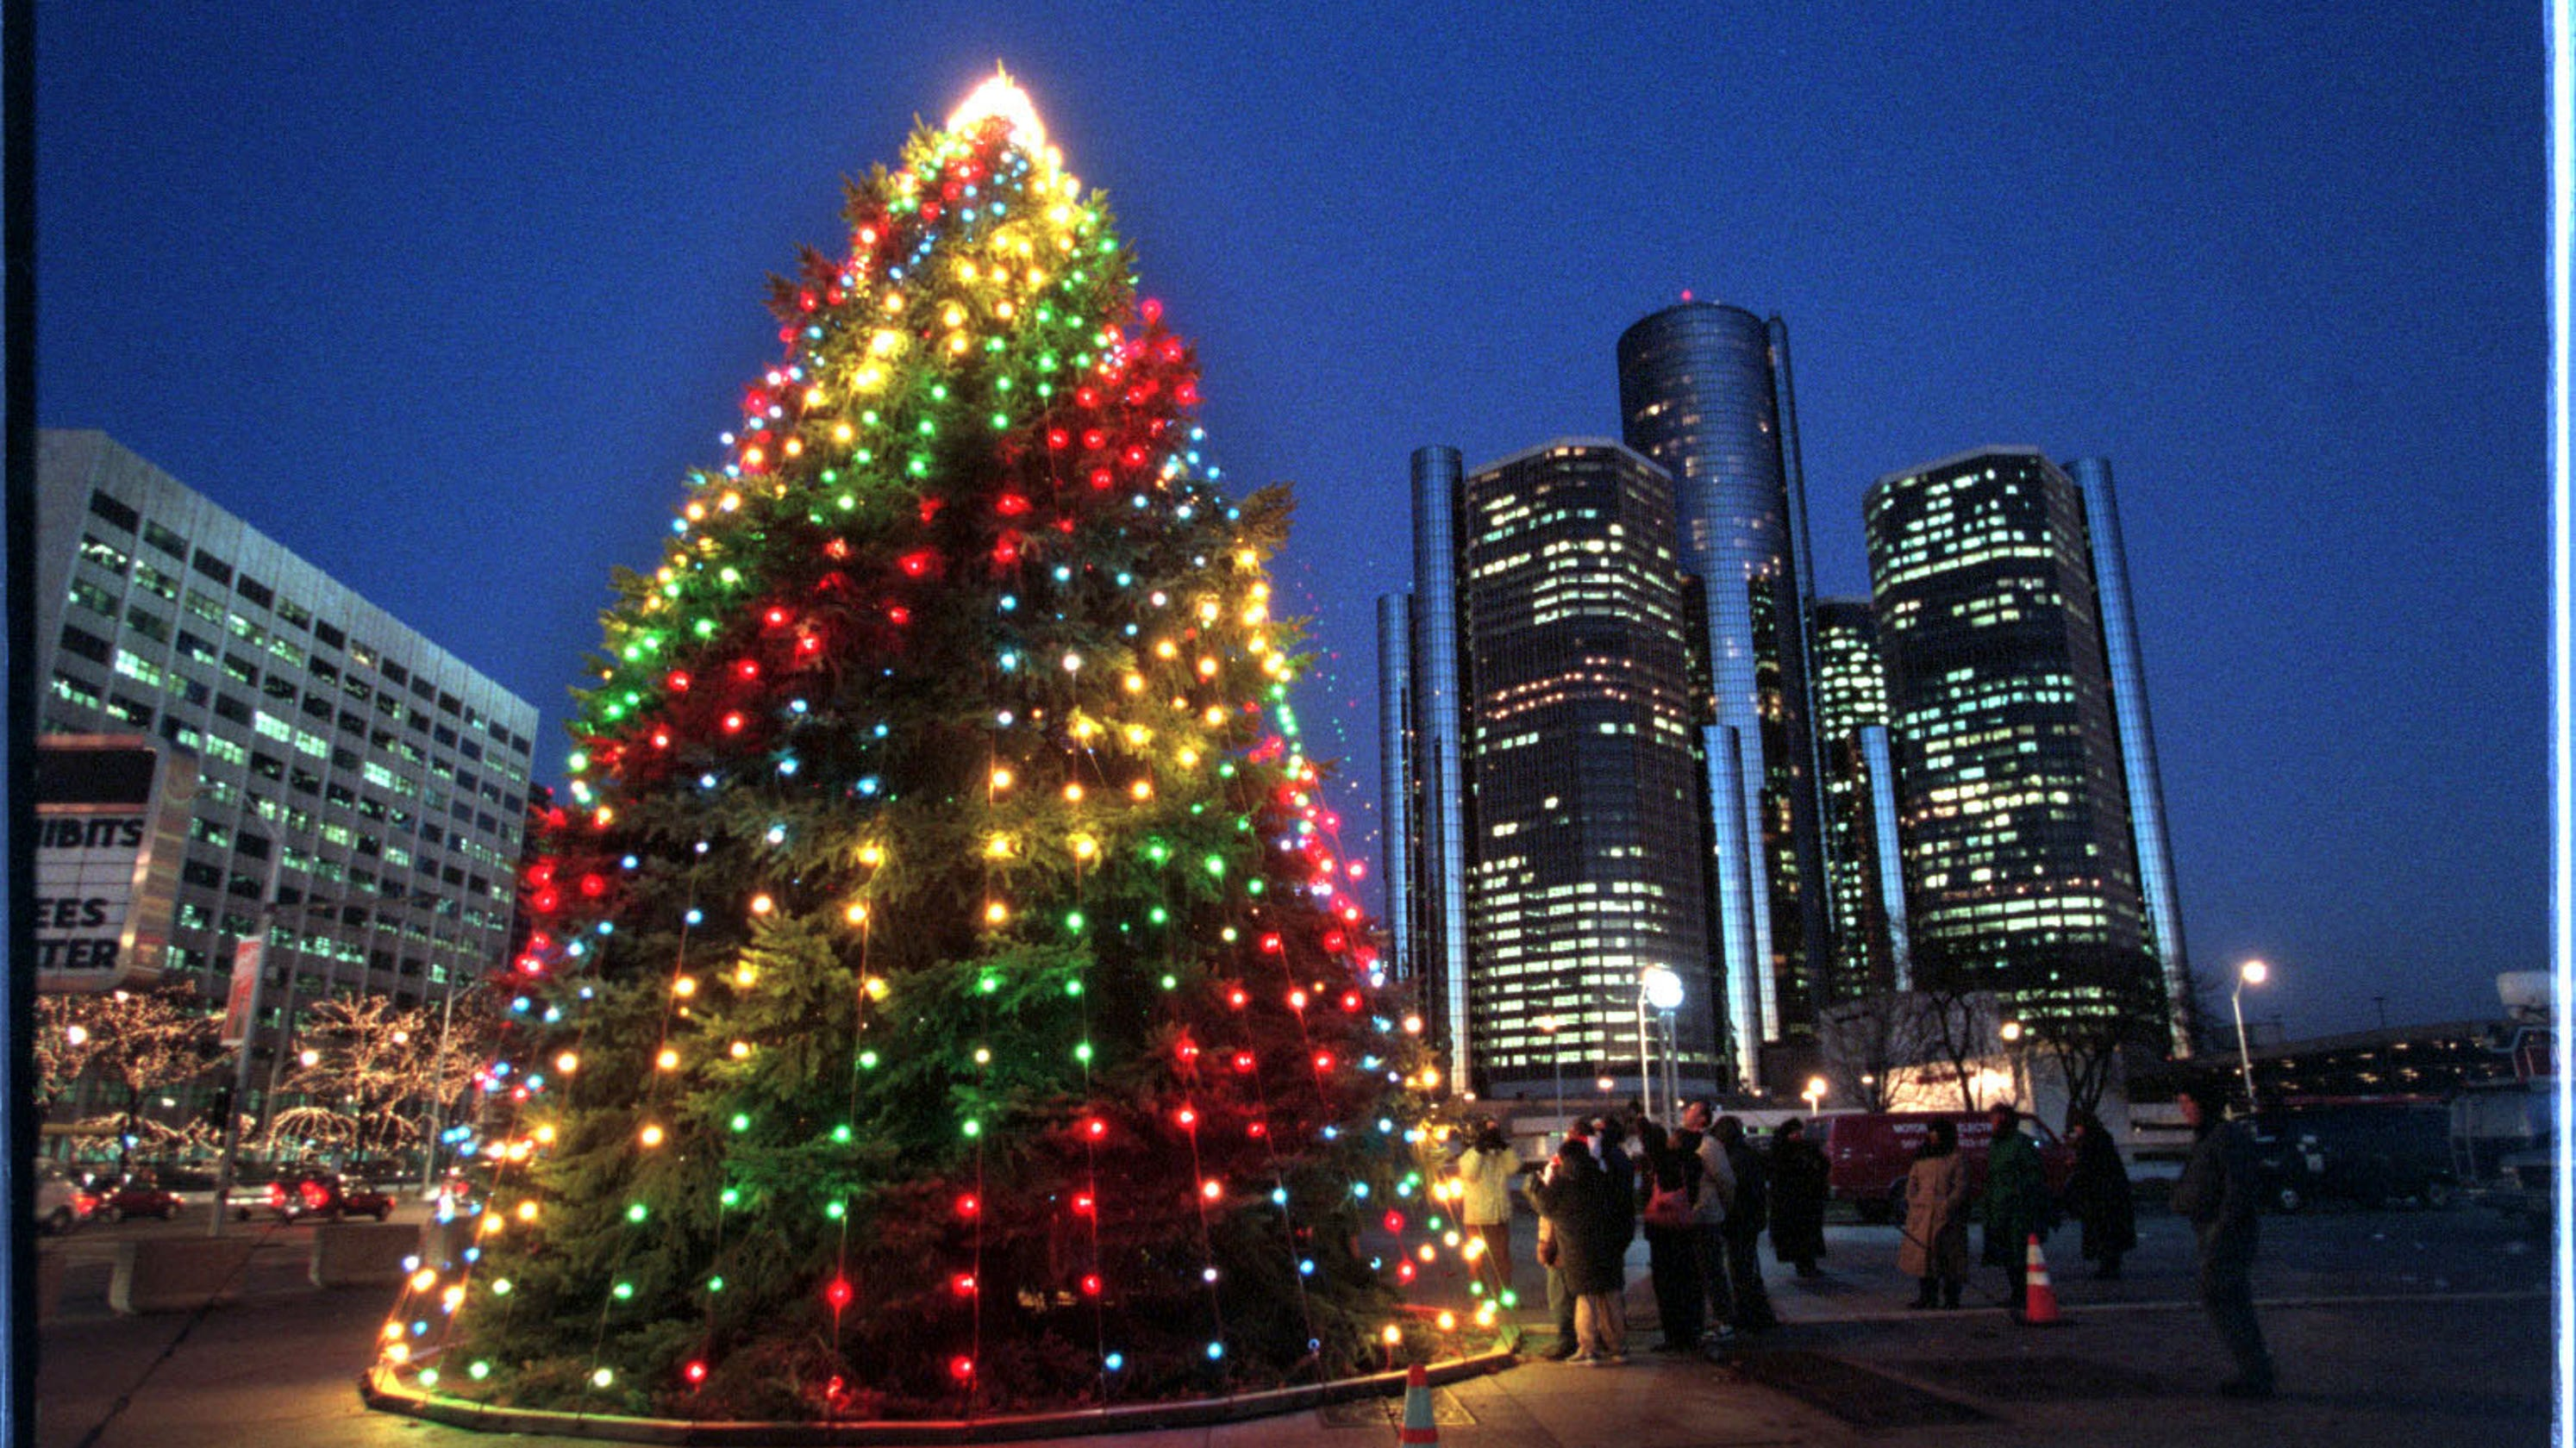 detroits 1003 wnic now playing christmas music - What Station Is Christmas Music On